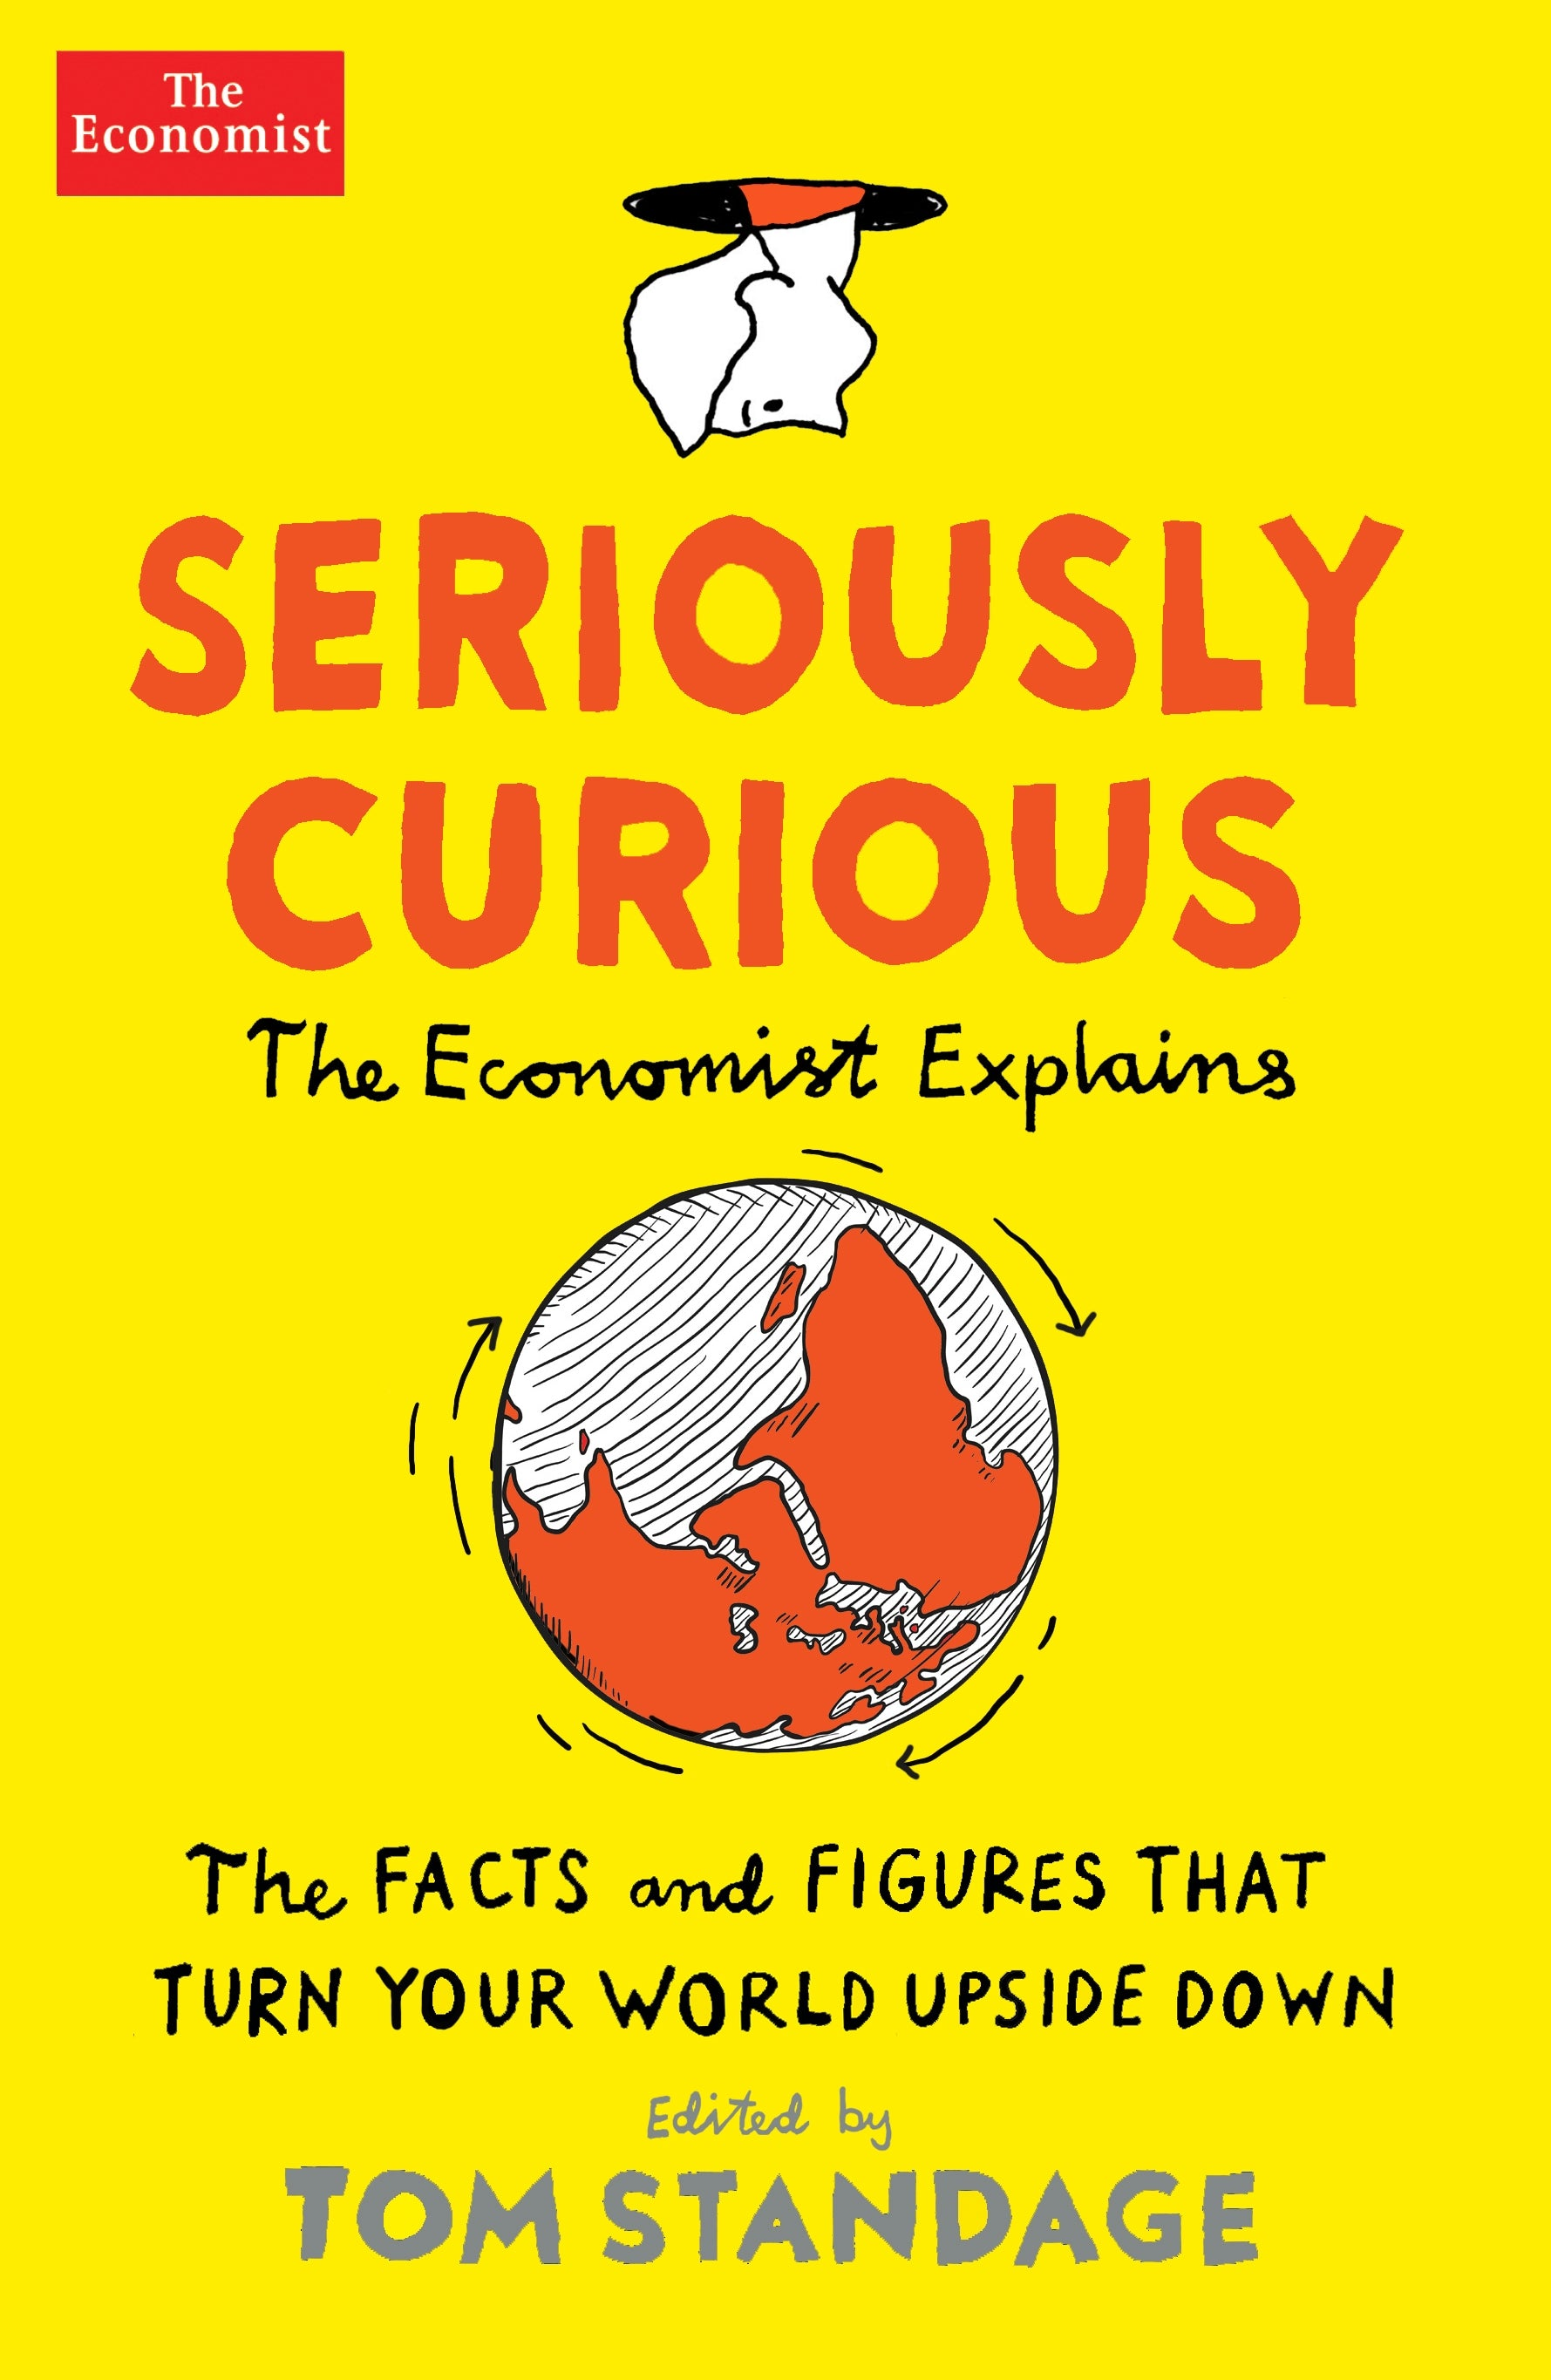 Seriously Curious by Tom Standage (E-Book)